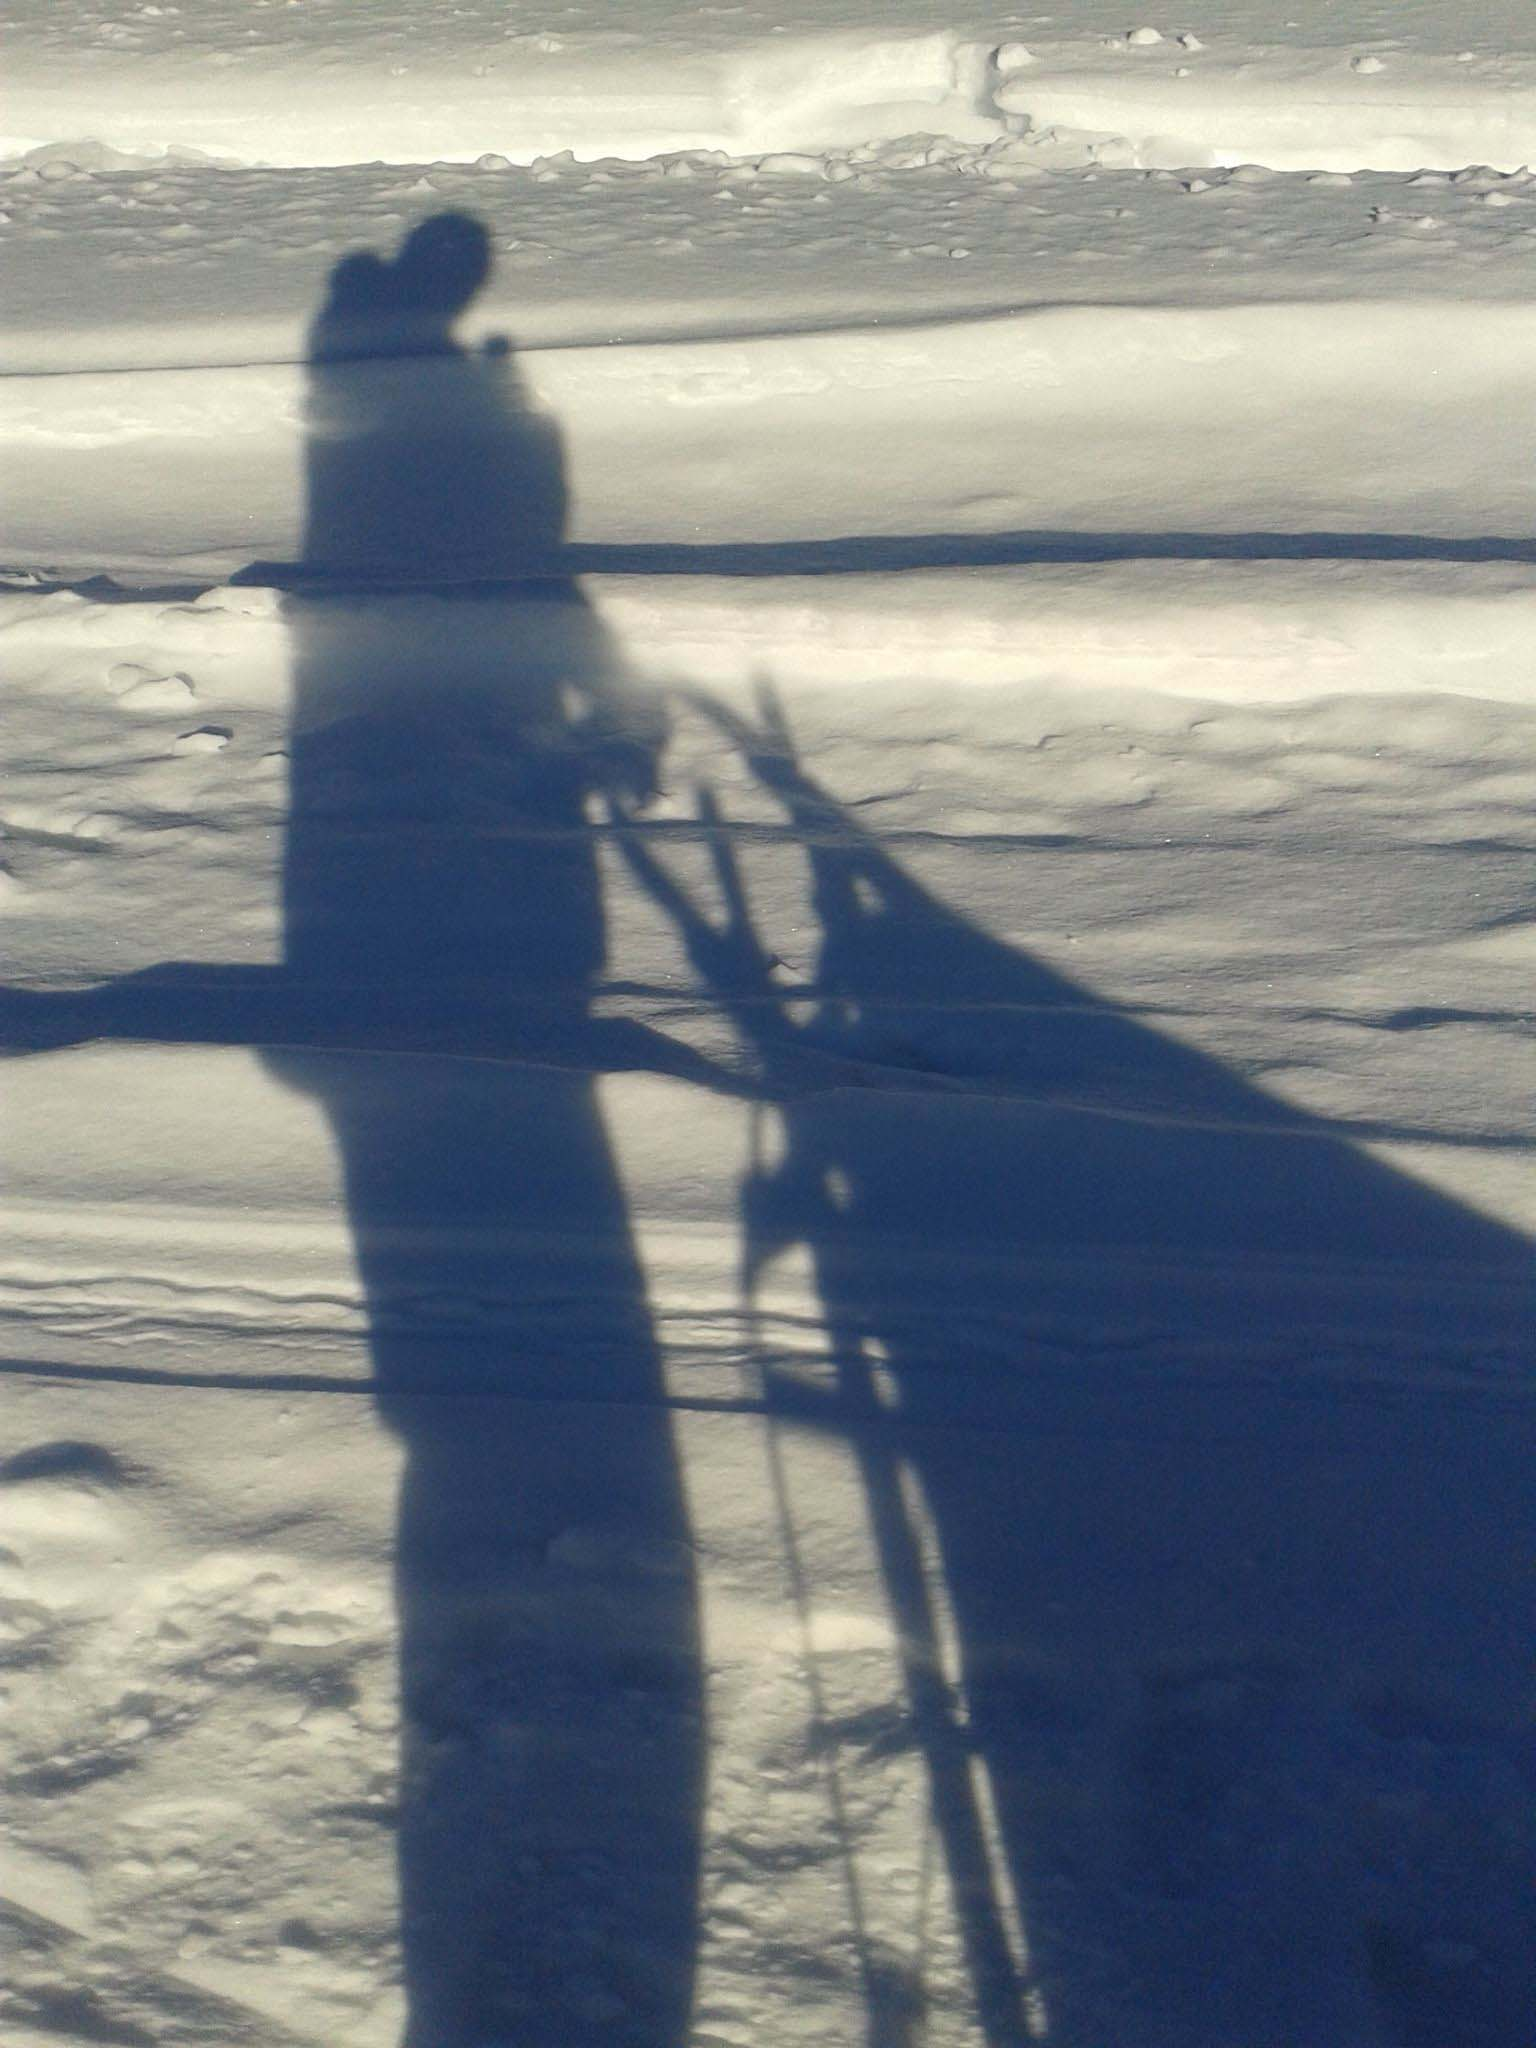 The shadows are long this far north